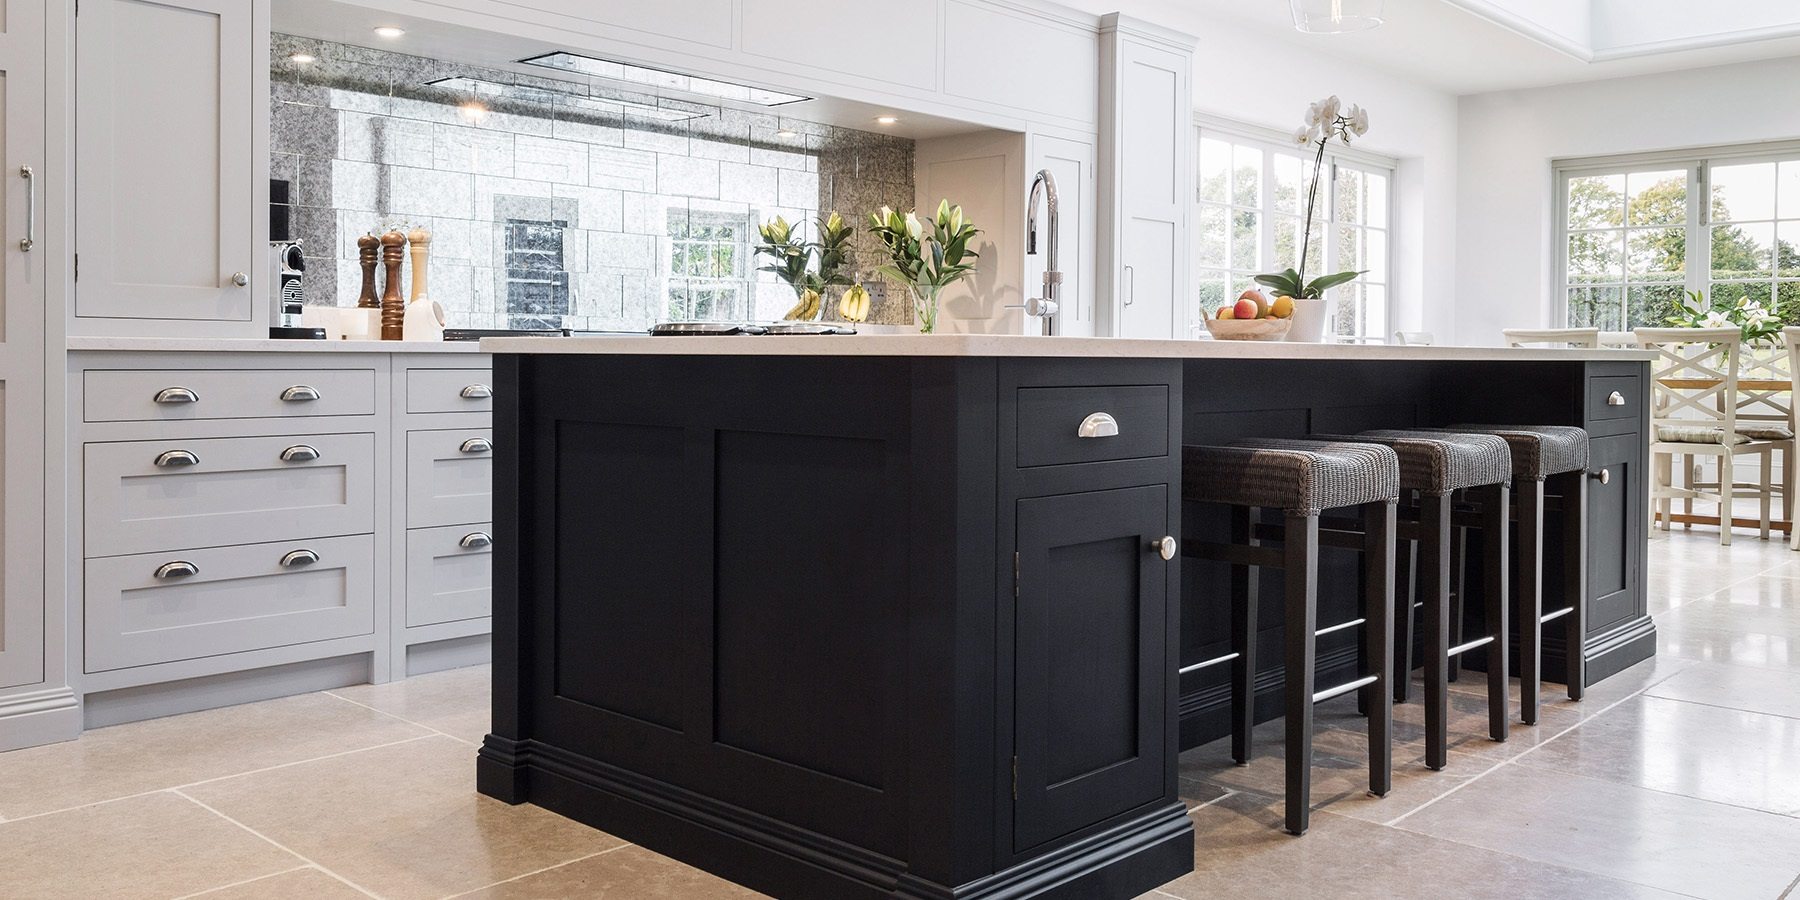 Luxury Open Plan Shaker Kitchen - Burlanes handmade Wellsdown kitchen, designed and handmade in our Kent workshop.